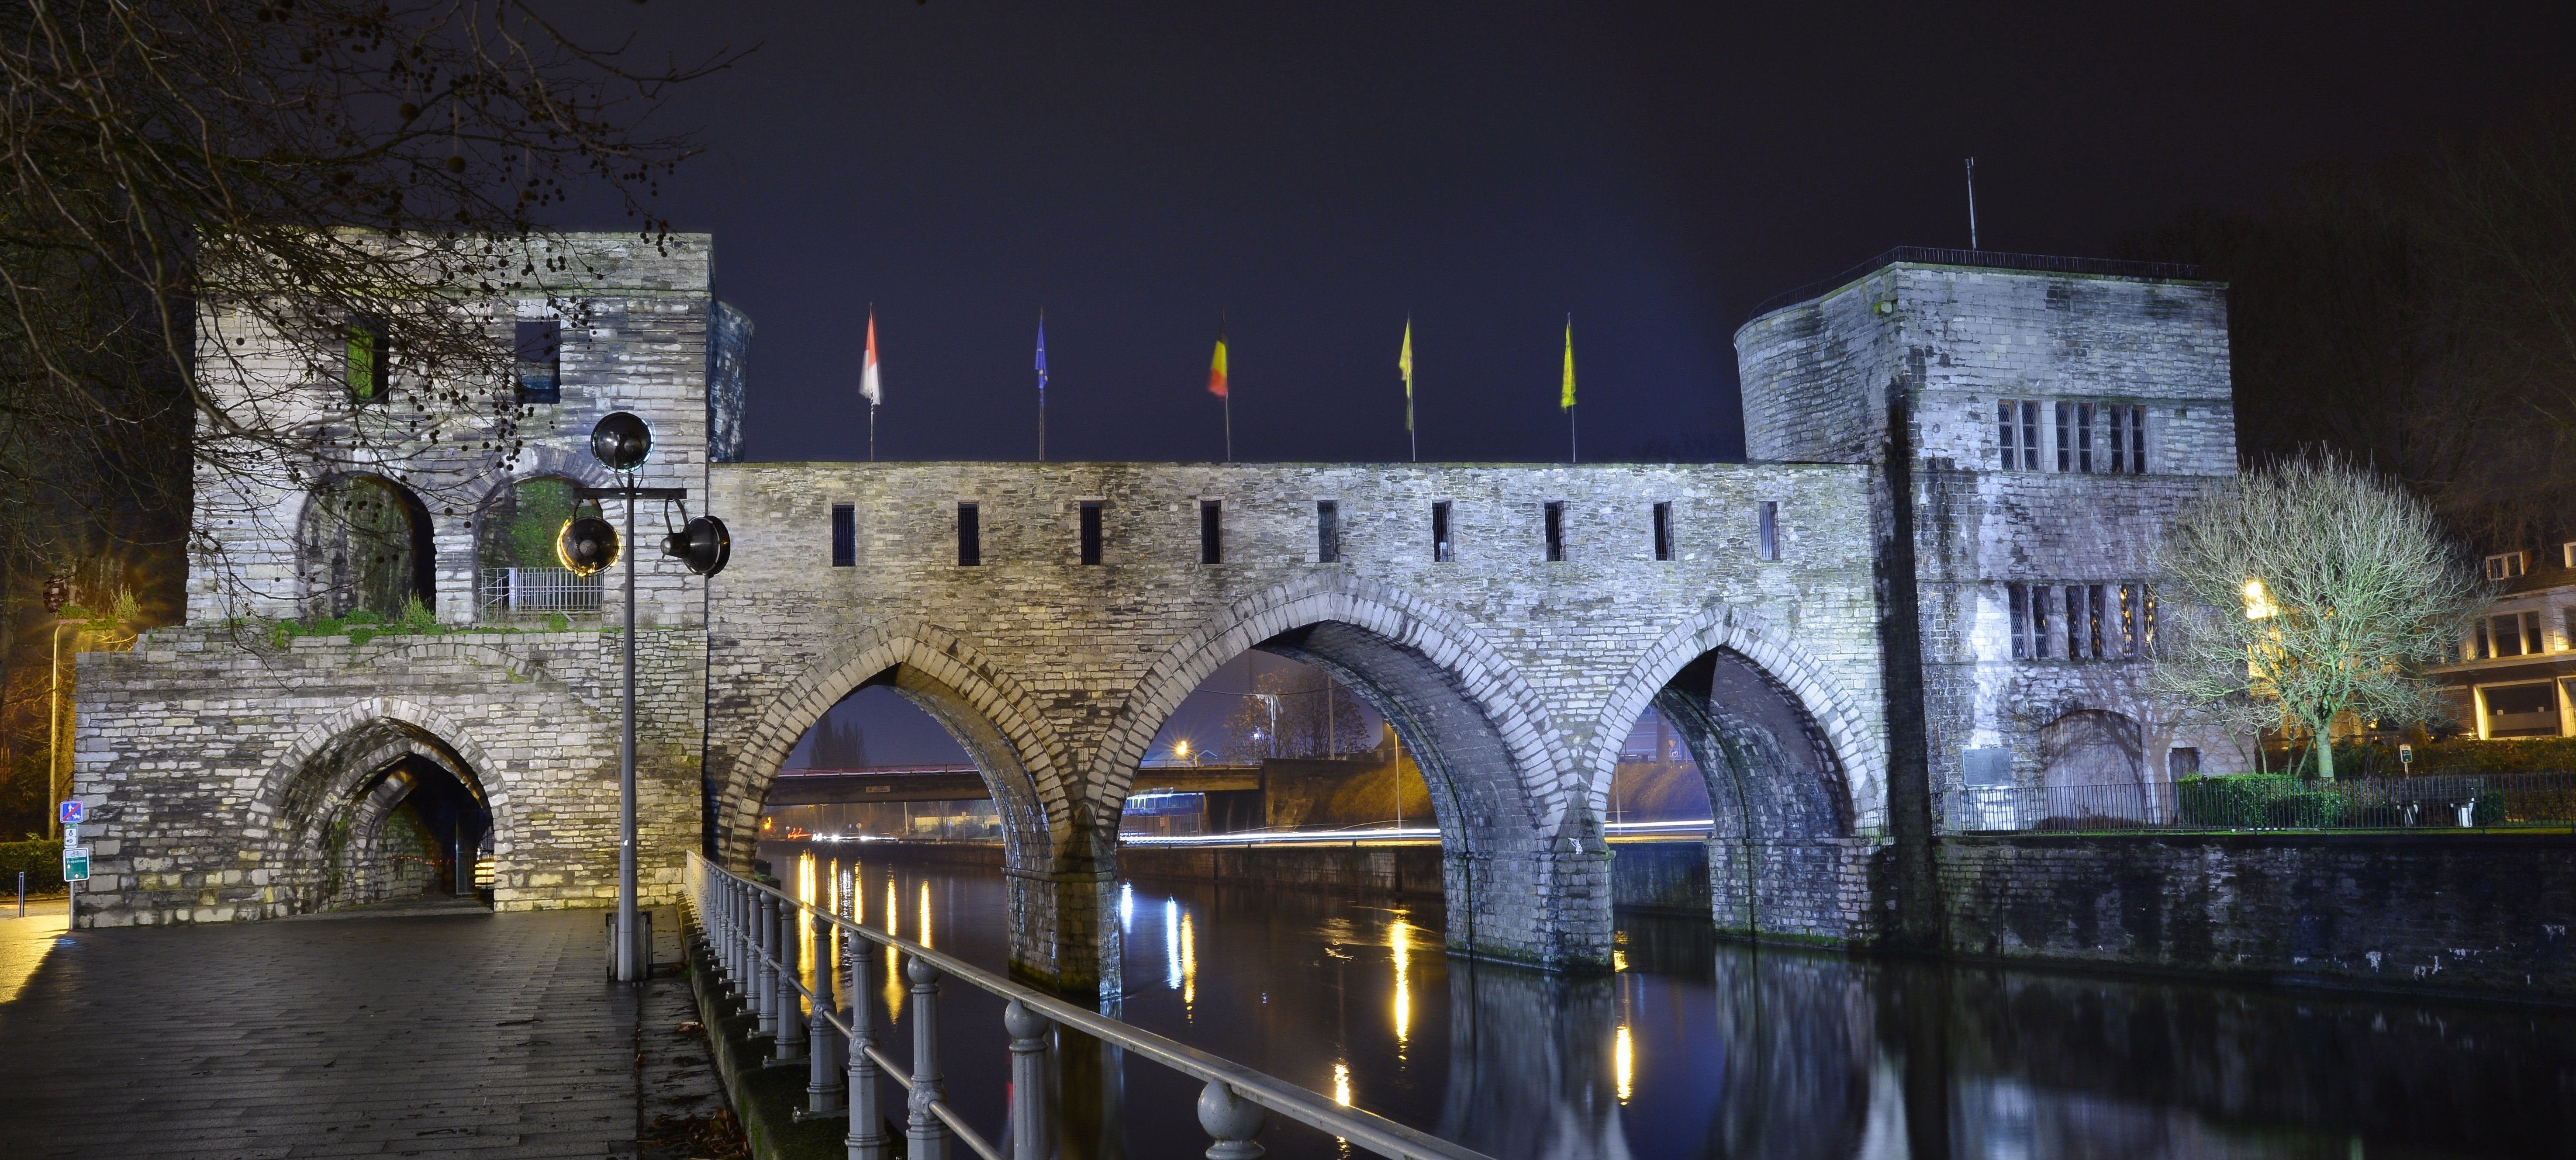 Pont à trous Tournai